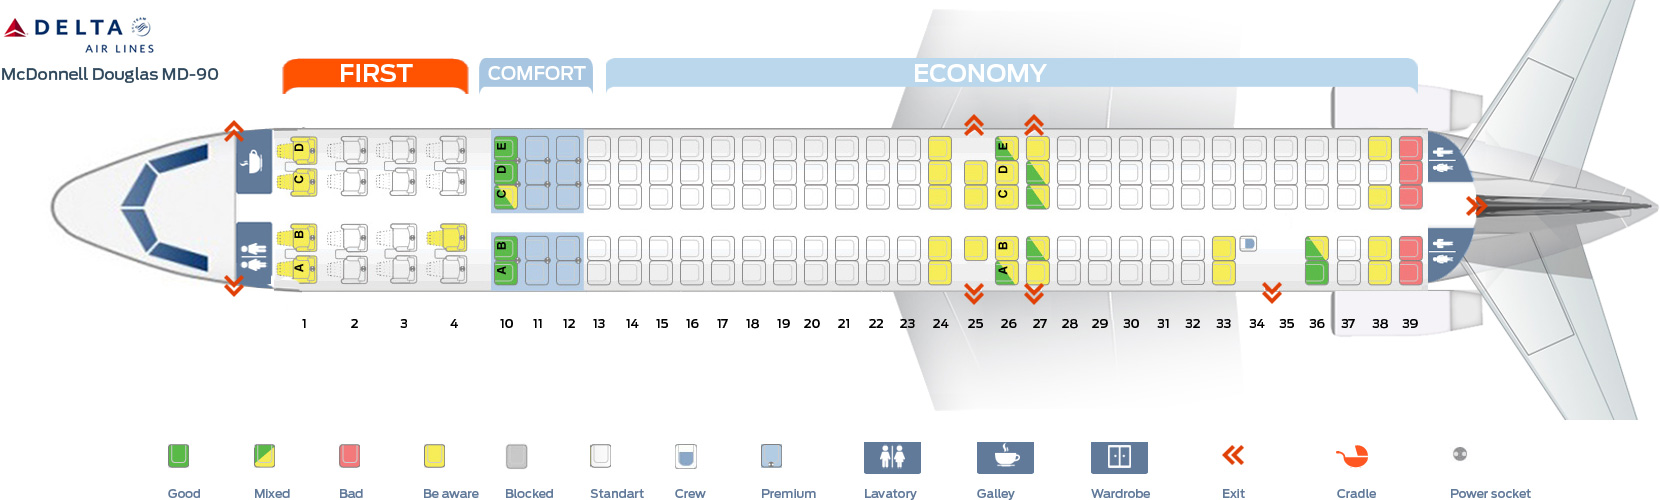 Seat_map_Delta_Airlines_MD90